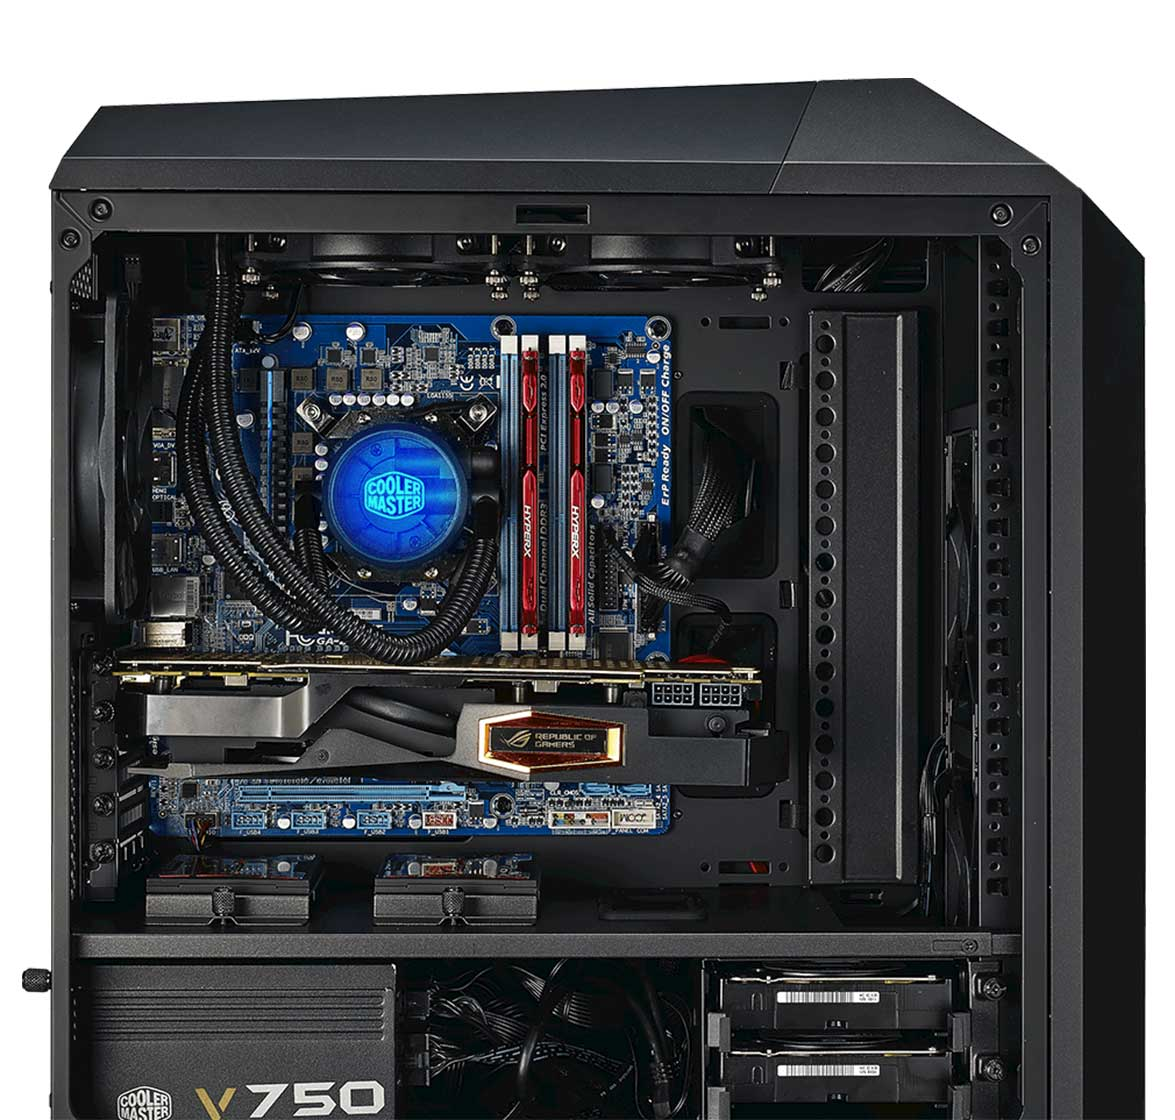 Cooler Master Mastercase Pro 3 MCY-C3P1-KWNN Compact